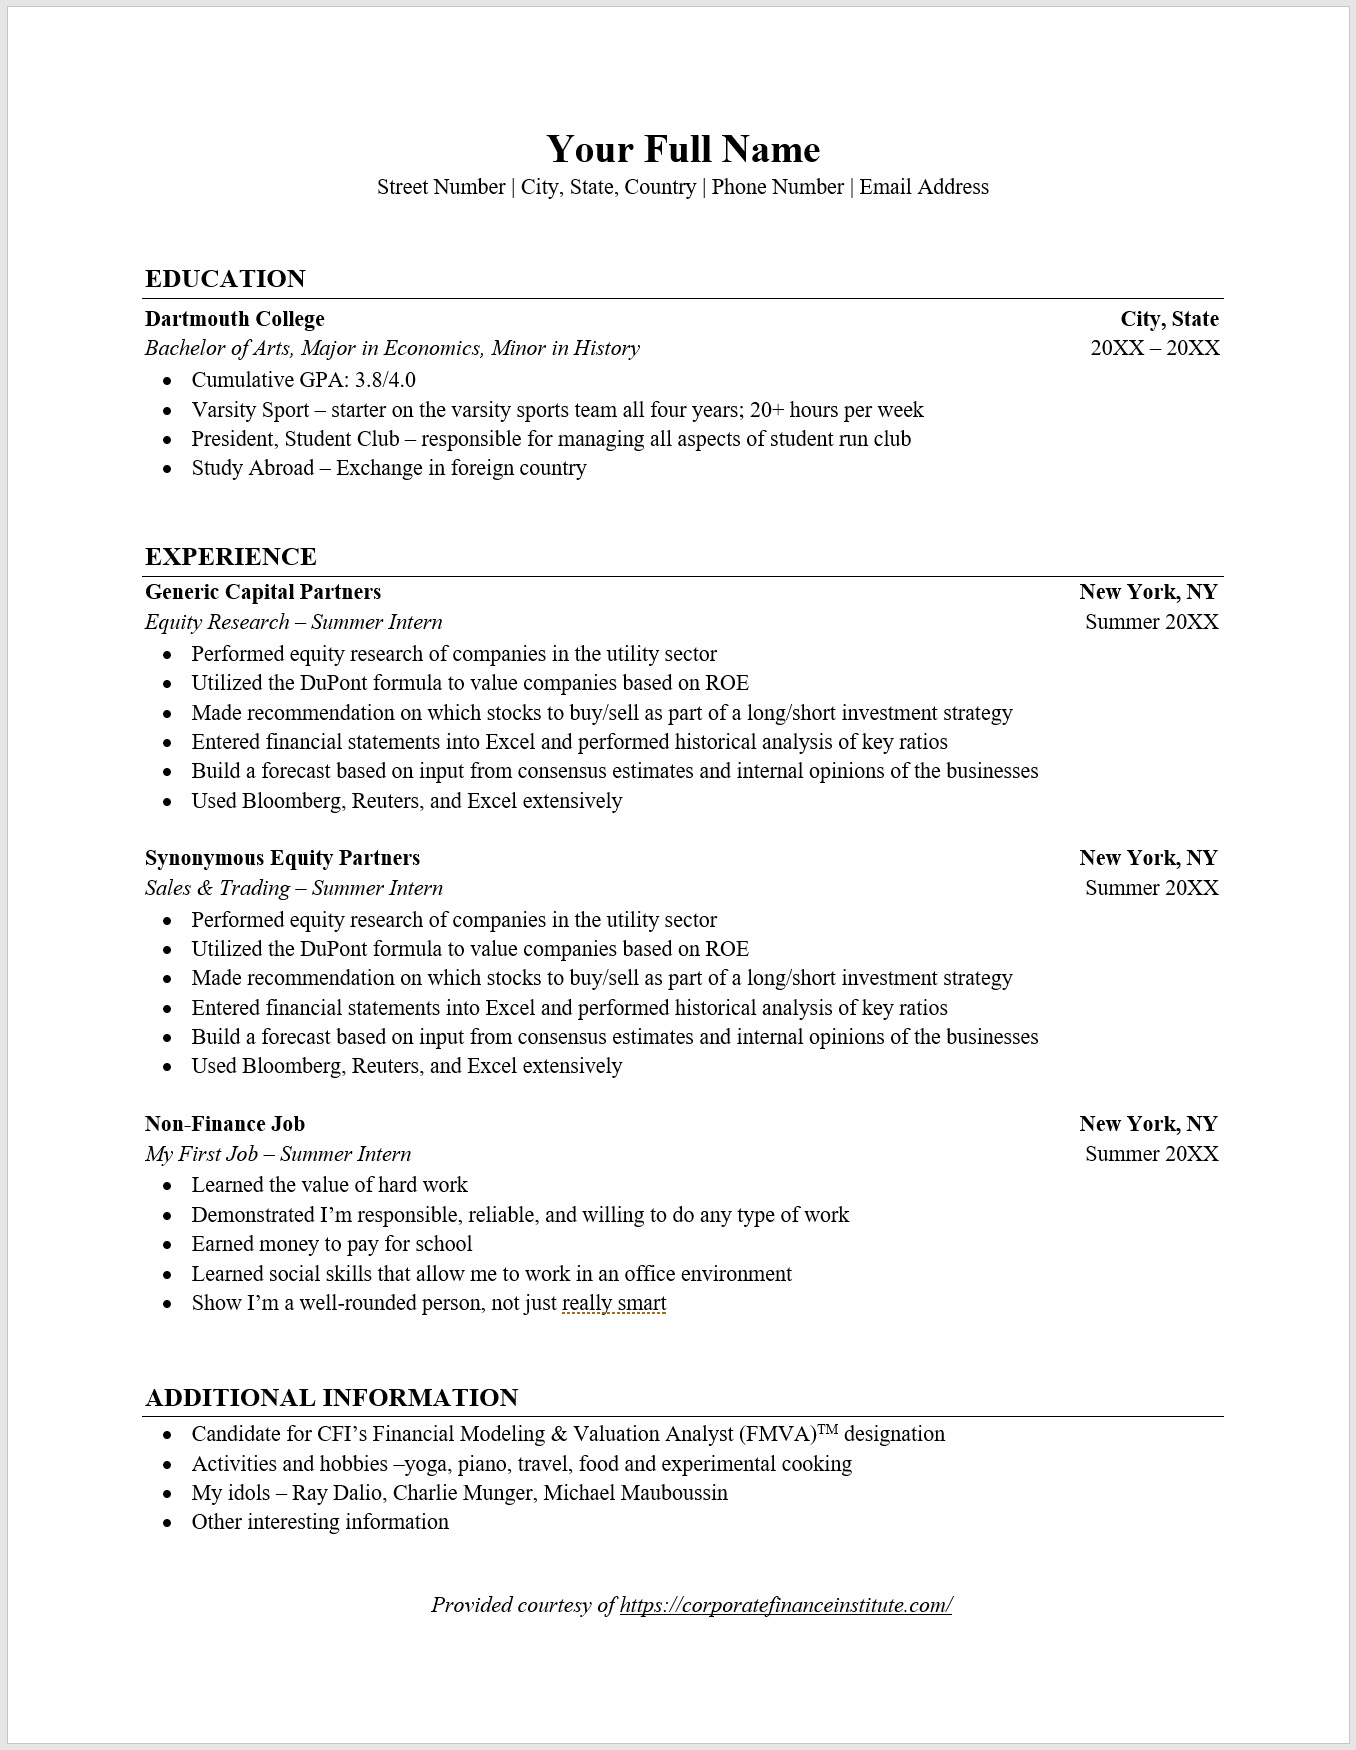 Dean's List on Resume - Overview, Example, Pros/Cons of